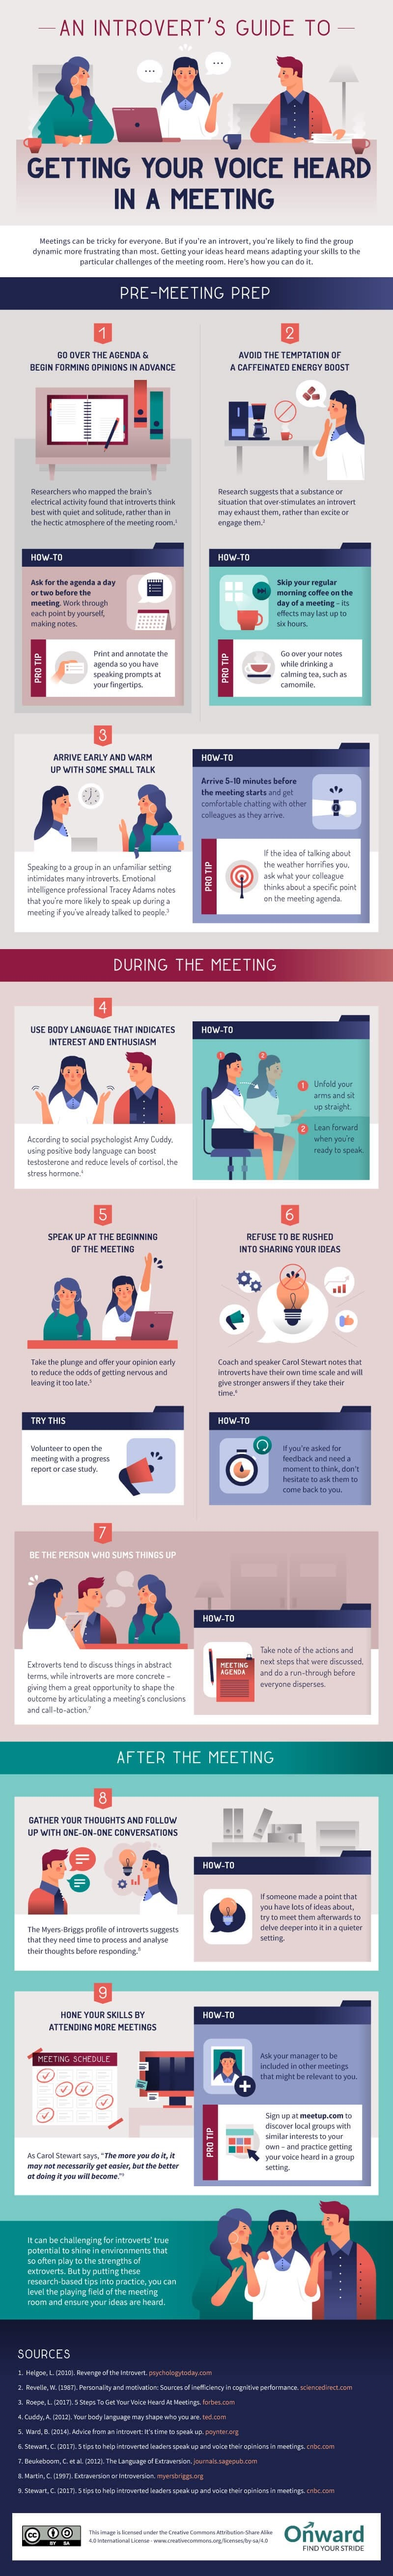 An Introvert's Guide to Getting Your Voice Heard in a Meeting - #infographic